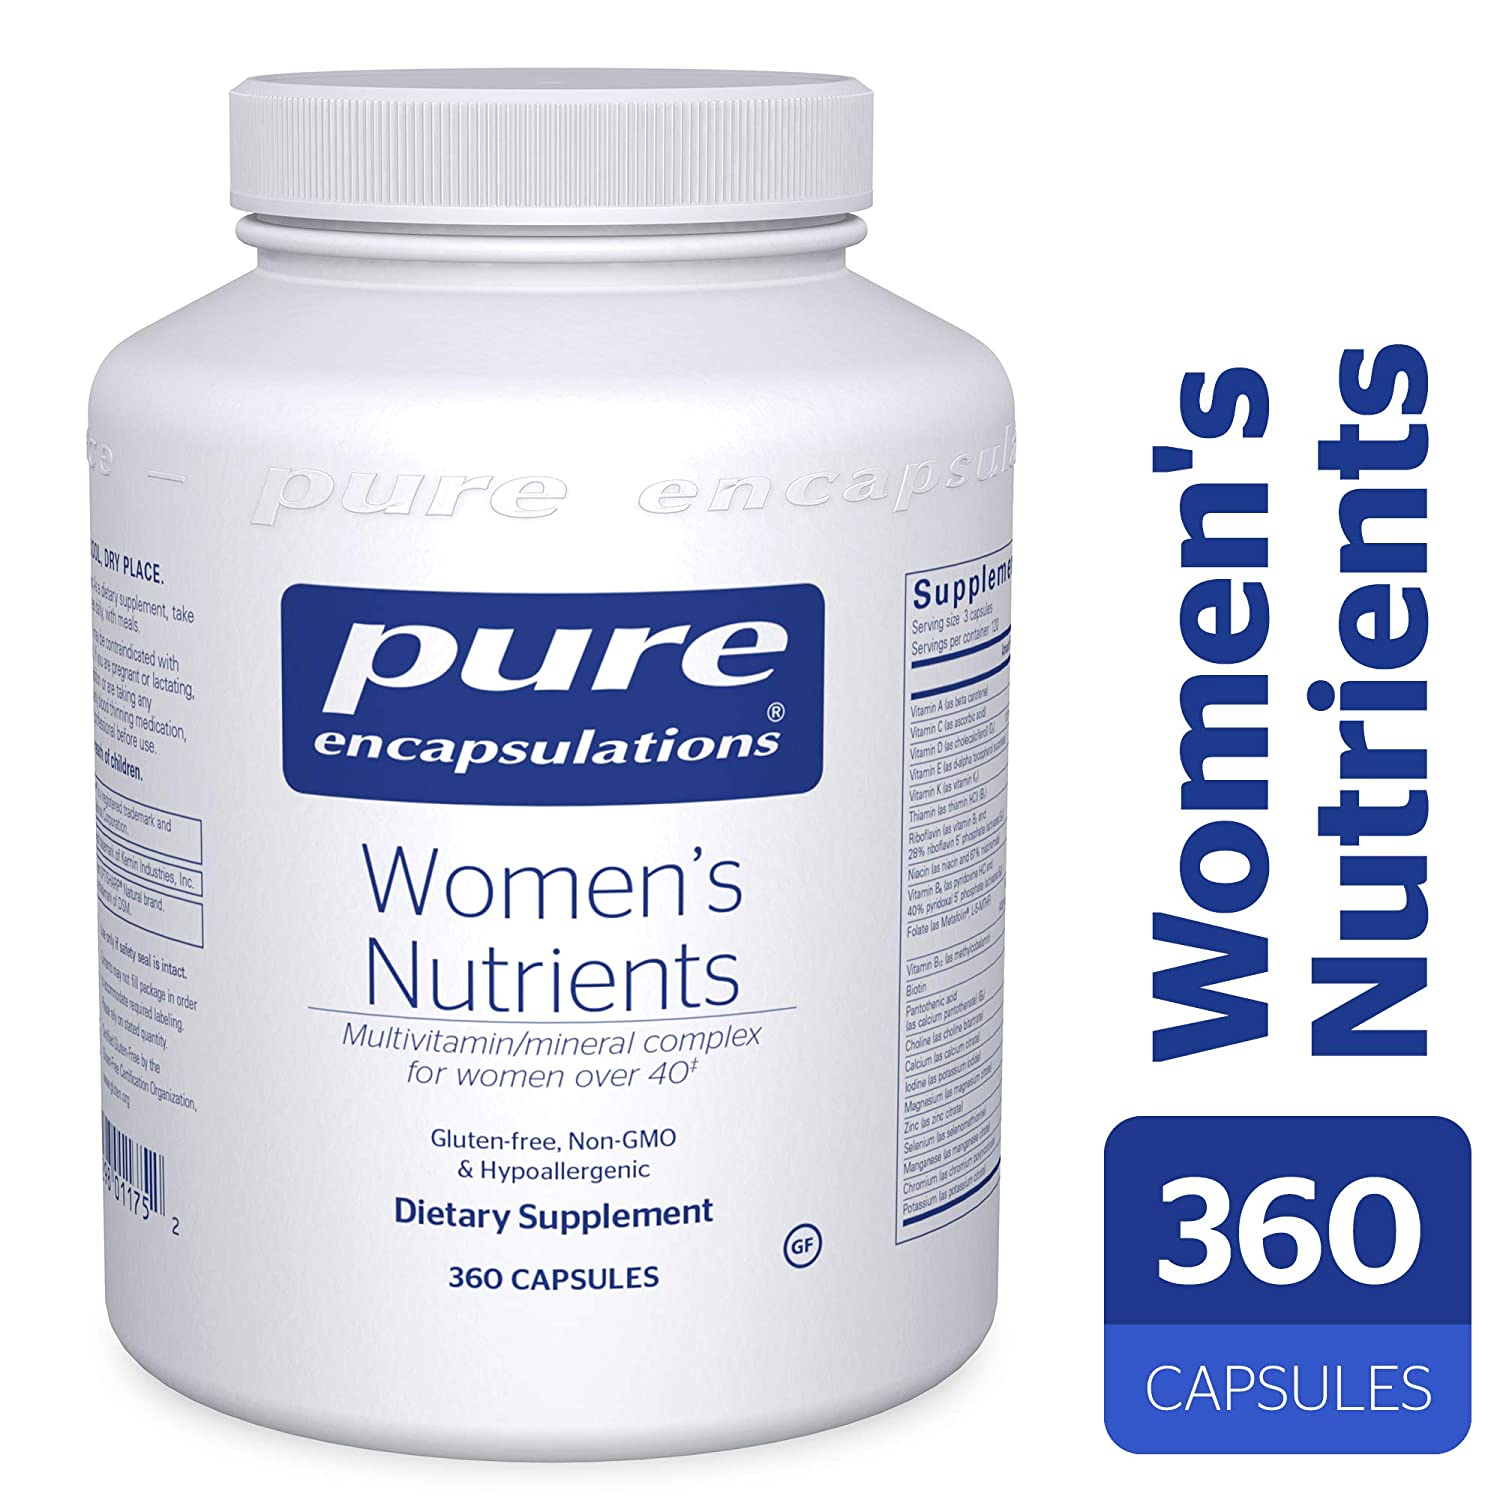 Pure Encapsulations – Women s Nutrients – Hypoallergenic Multivitamin Mineral Complex for Women Over 40* – 360 Capsules